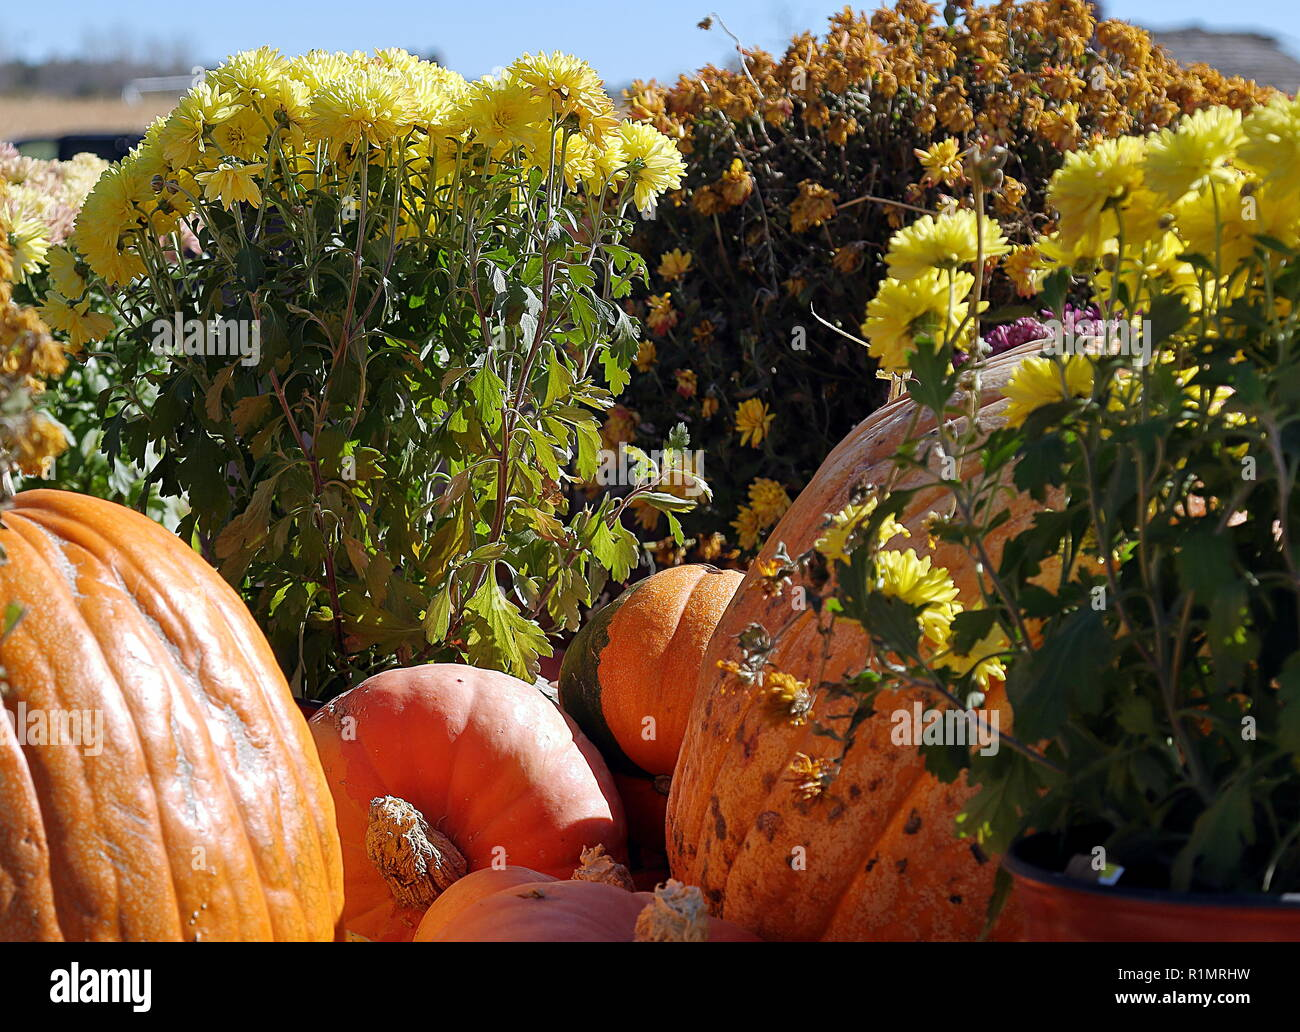 A small still life on the topic of Halloween. A few pumpkins and flowers in sunny day - Stock Image